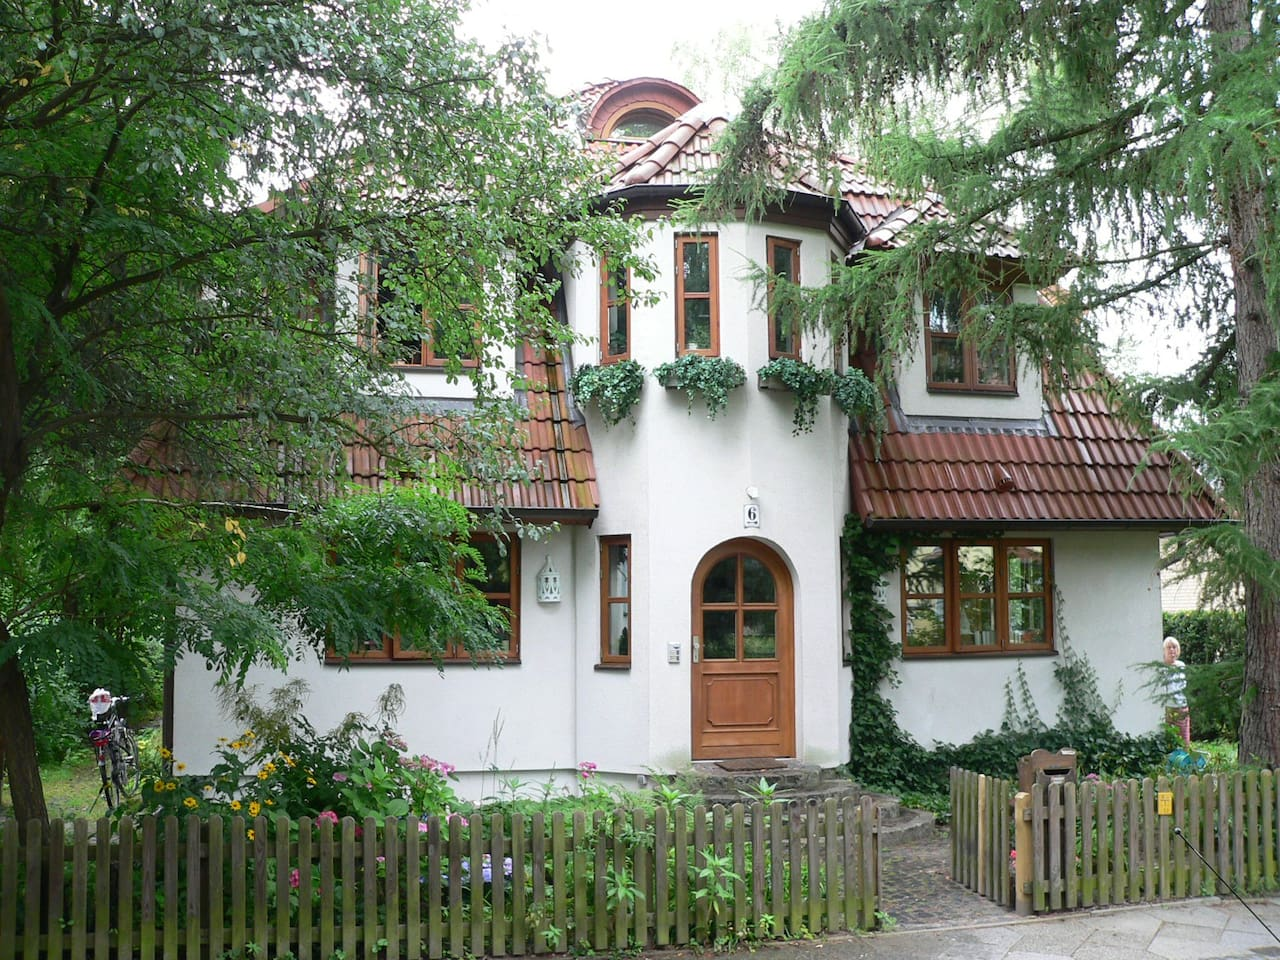 Das Haus - The building